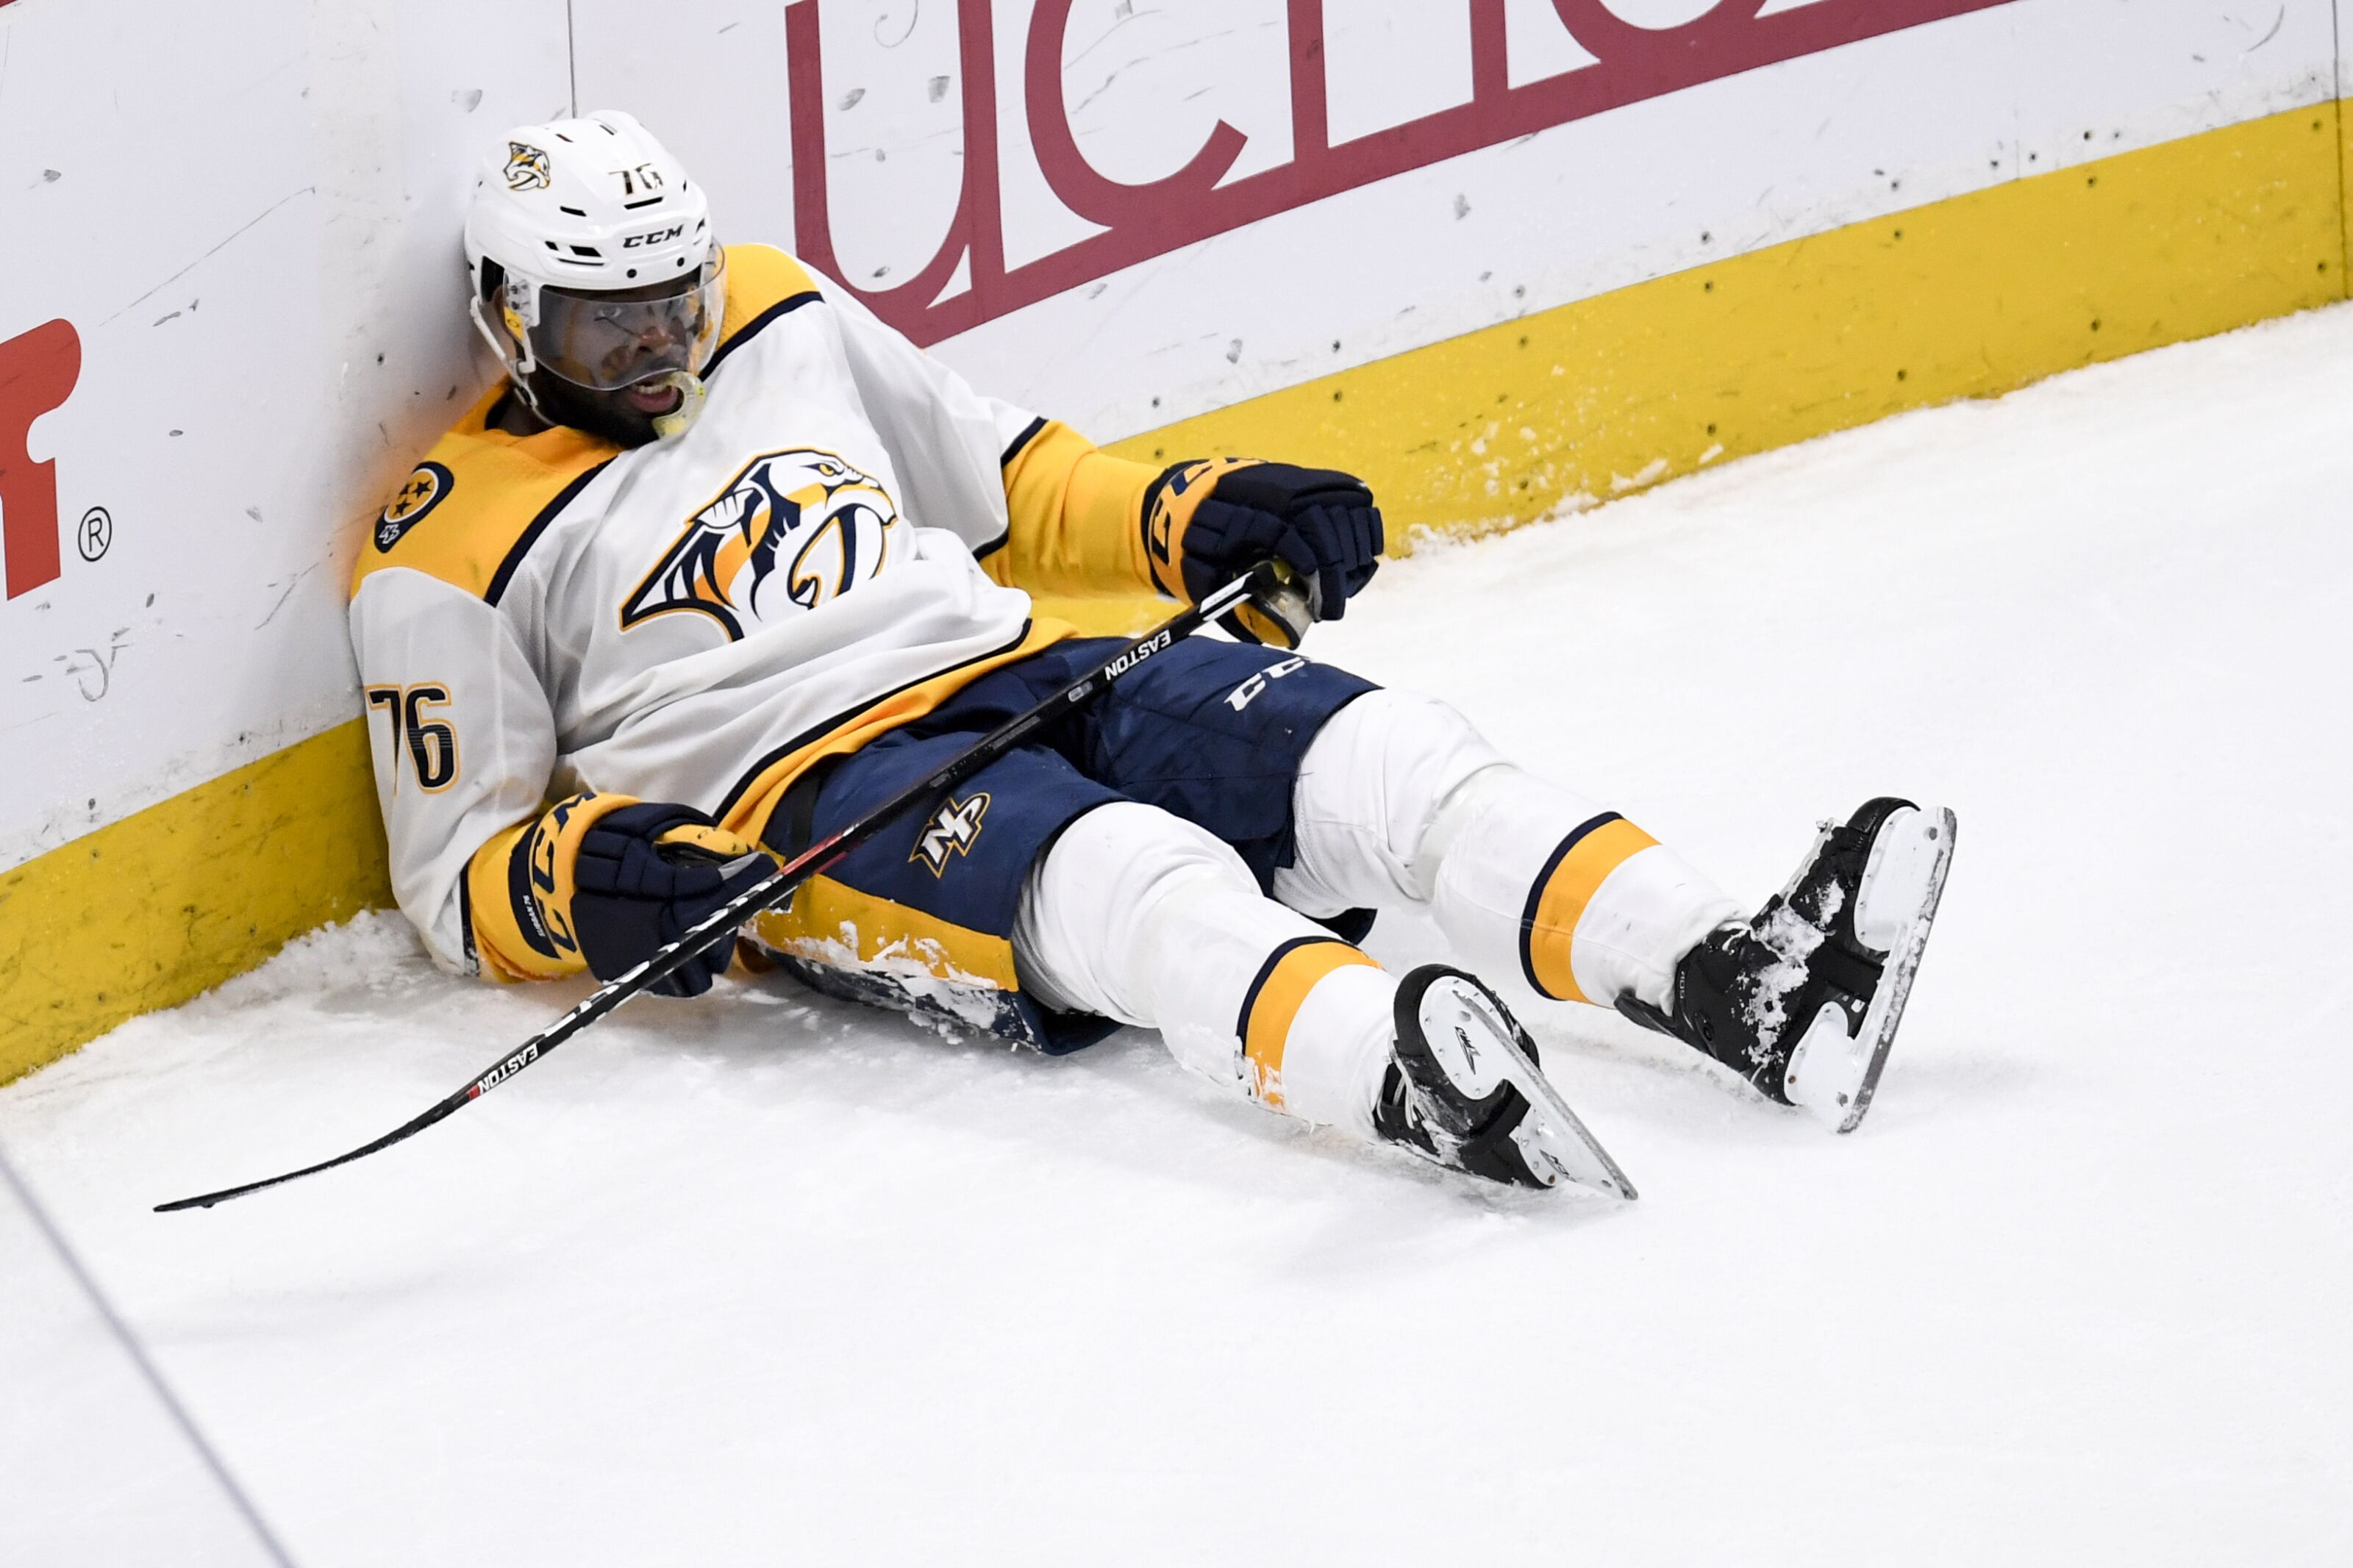 948409806-colorado-avalanche-vs-nashville-predators-nhl-playoffs.jpg